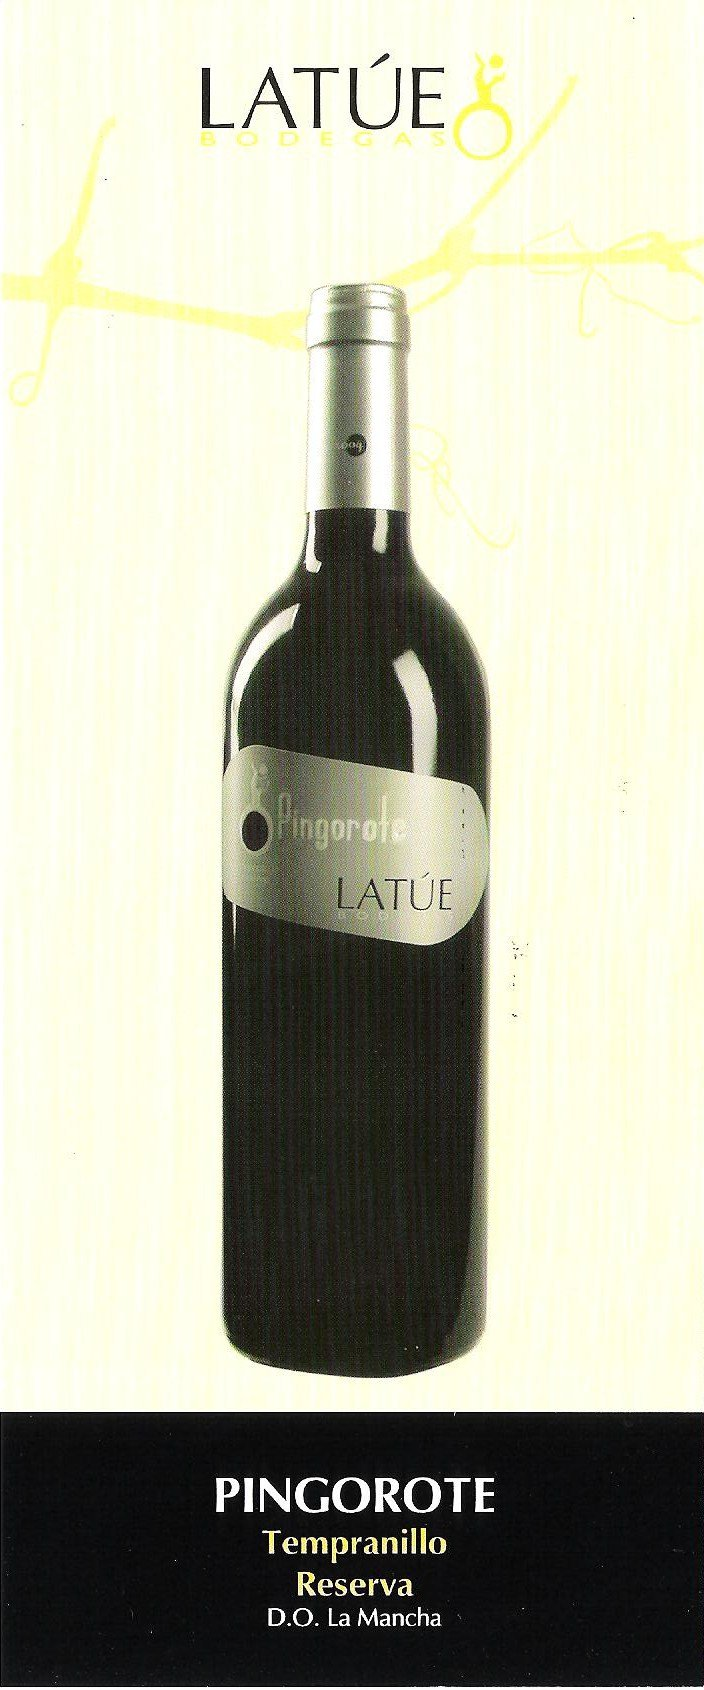 PINGOROTE TEMPRANILLO RESERVA (Red wine)